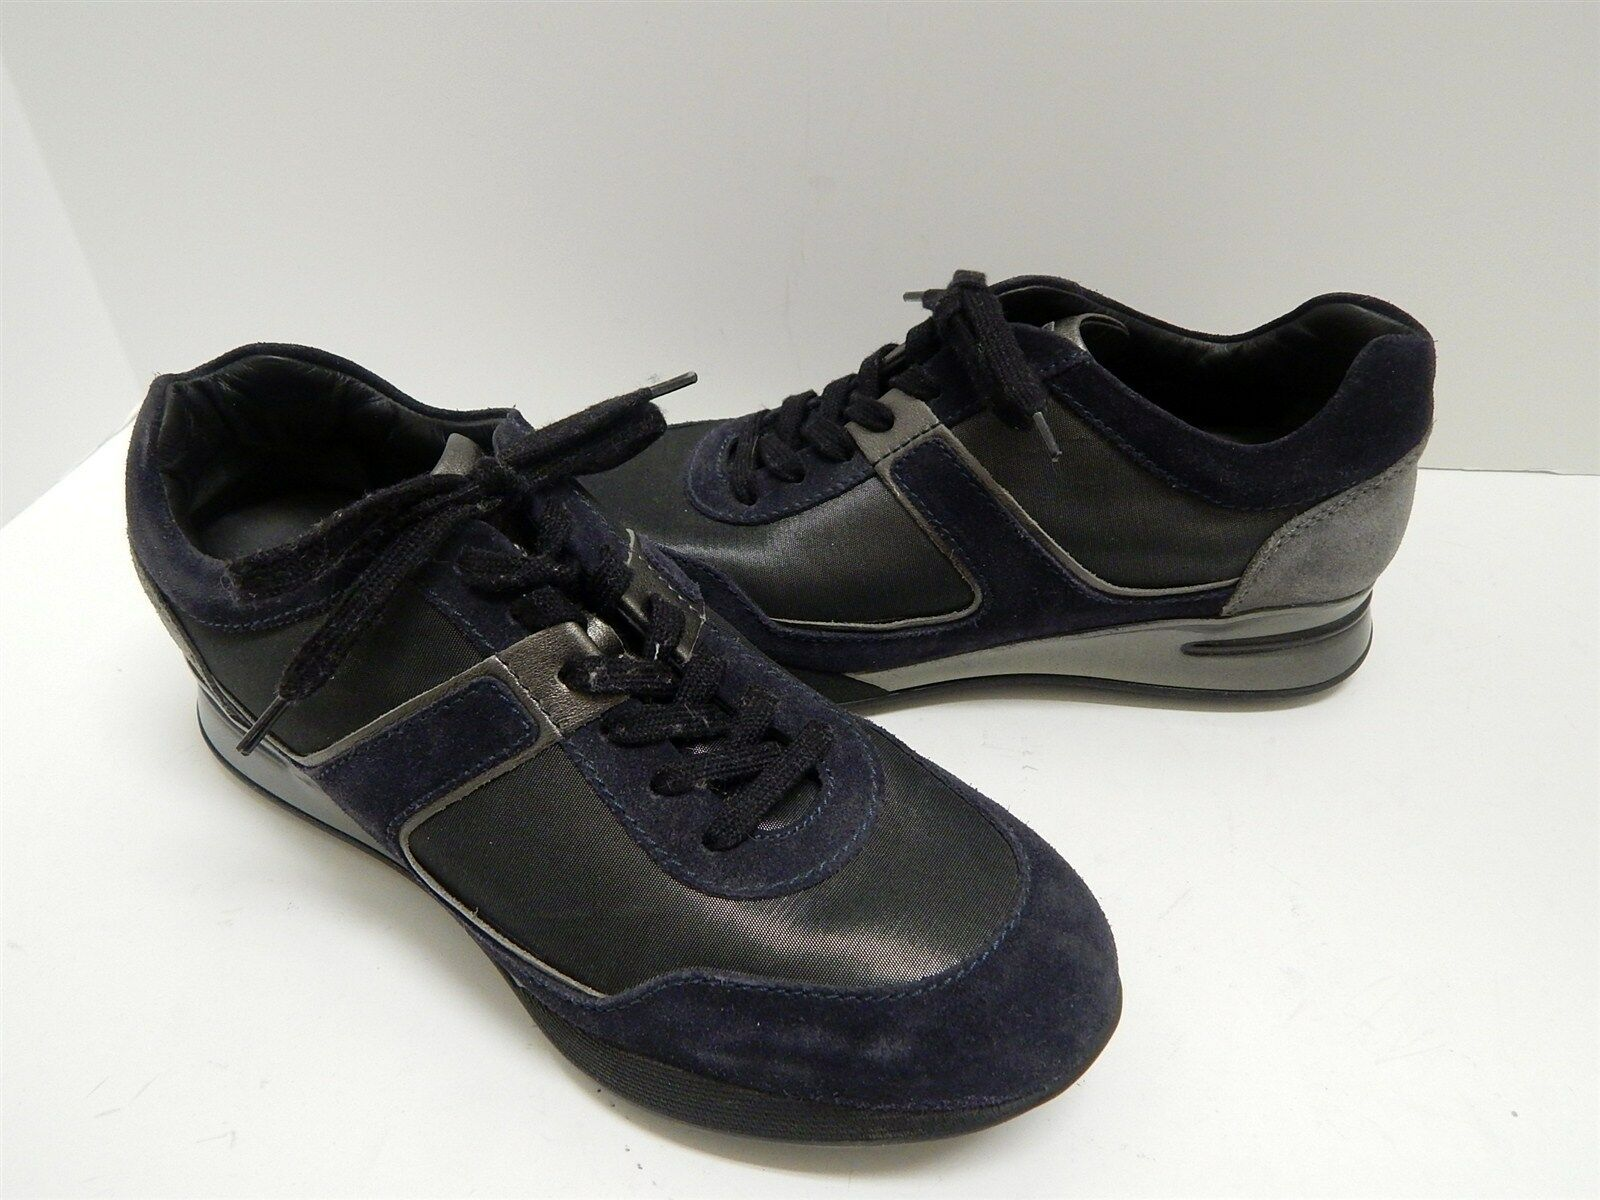 Tod's Project Italy Black Metallic Metallic Metallic Leather Fashion Sneakers 38 US 7.5 M 6bff1e